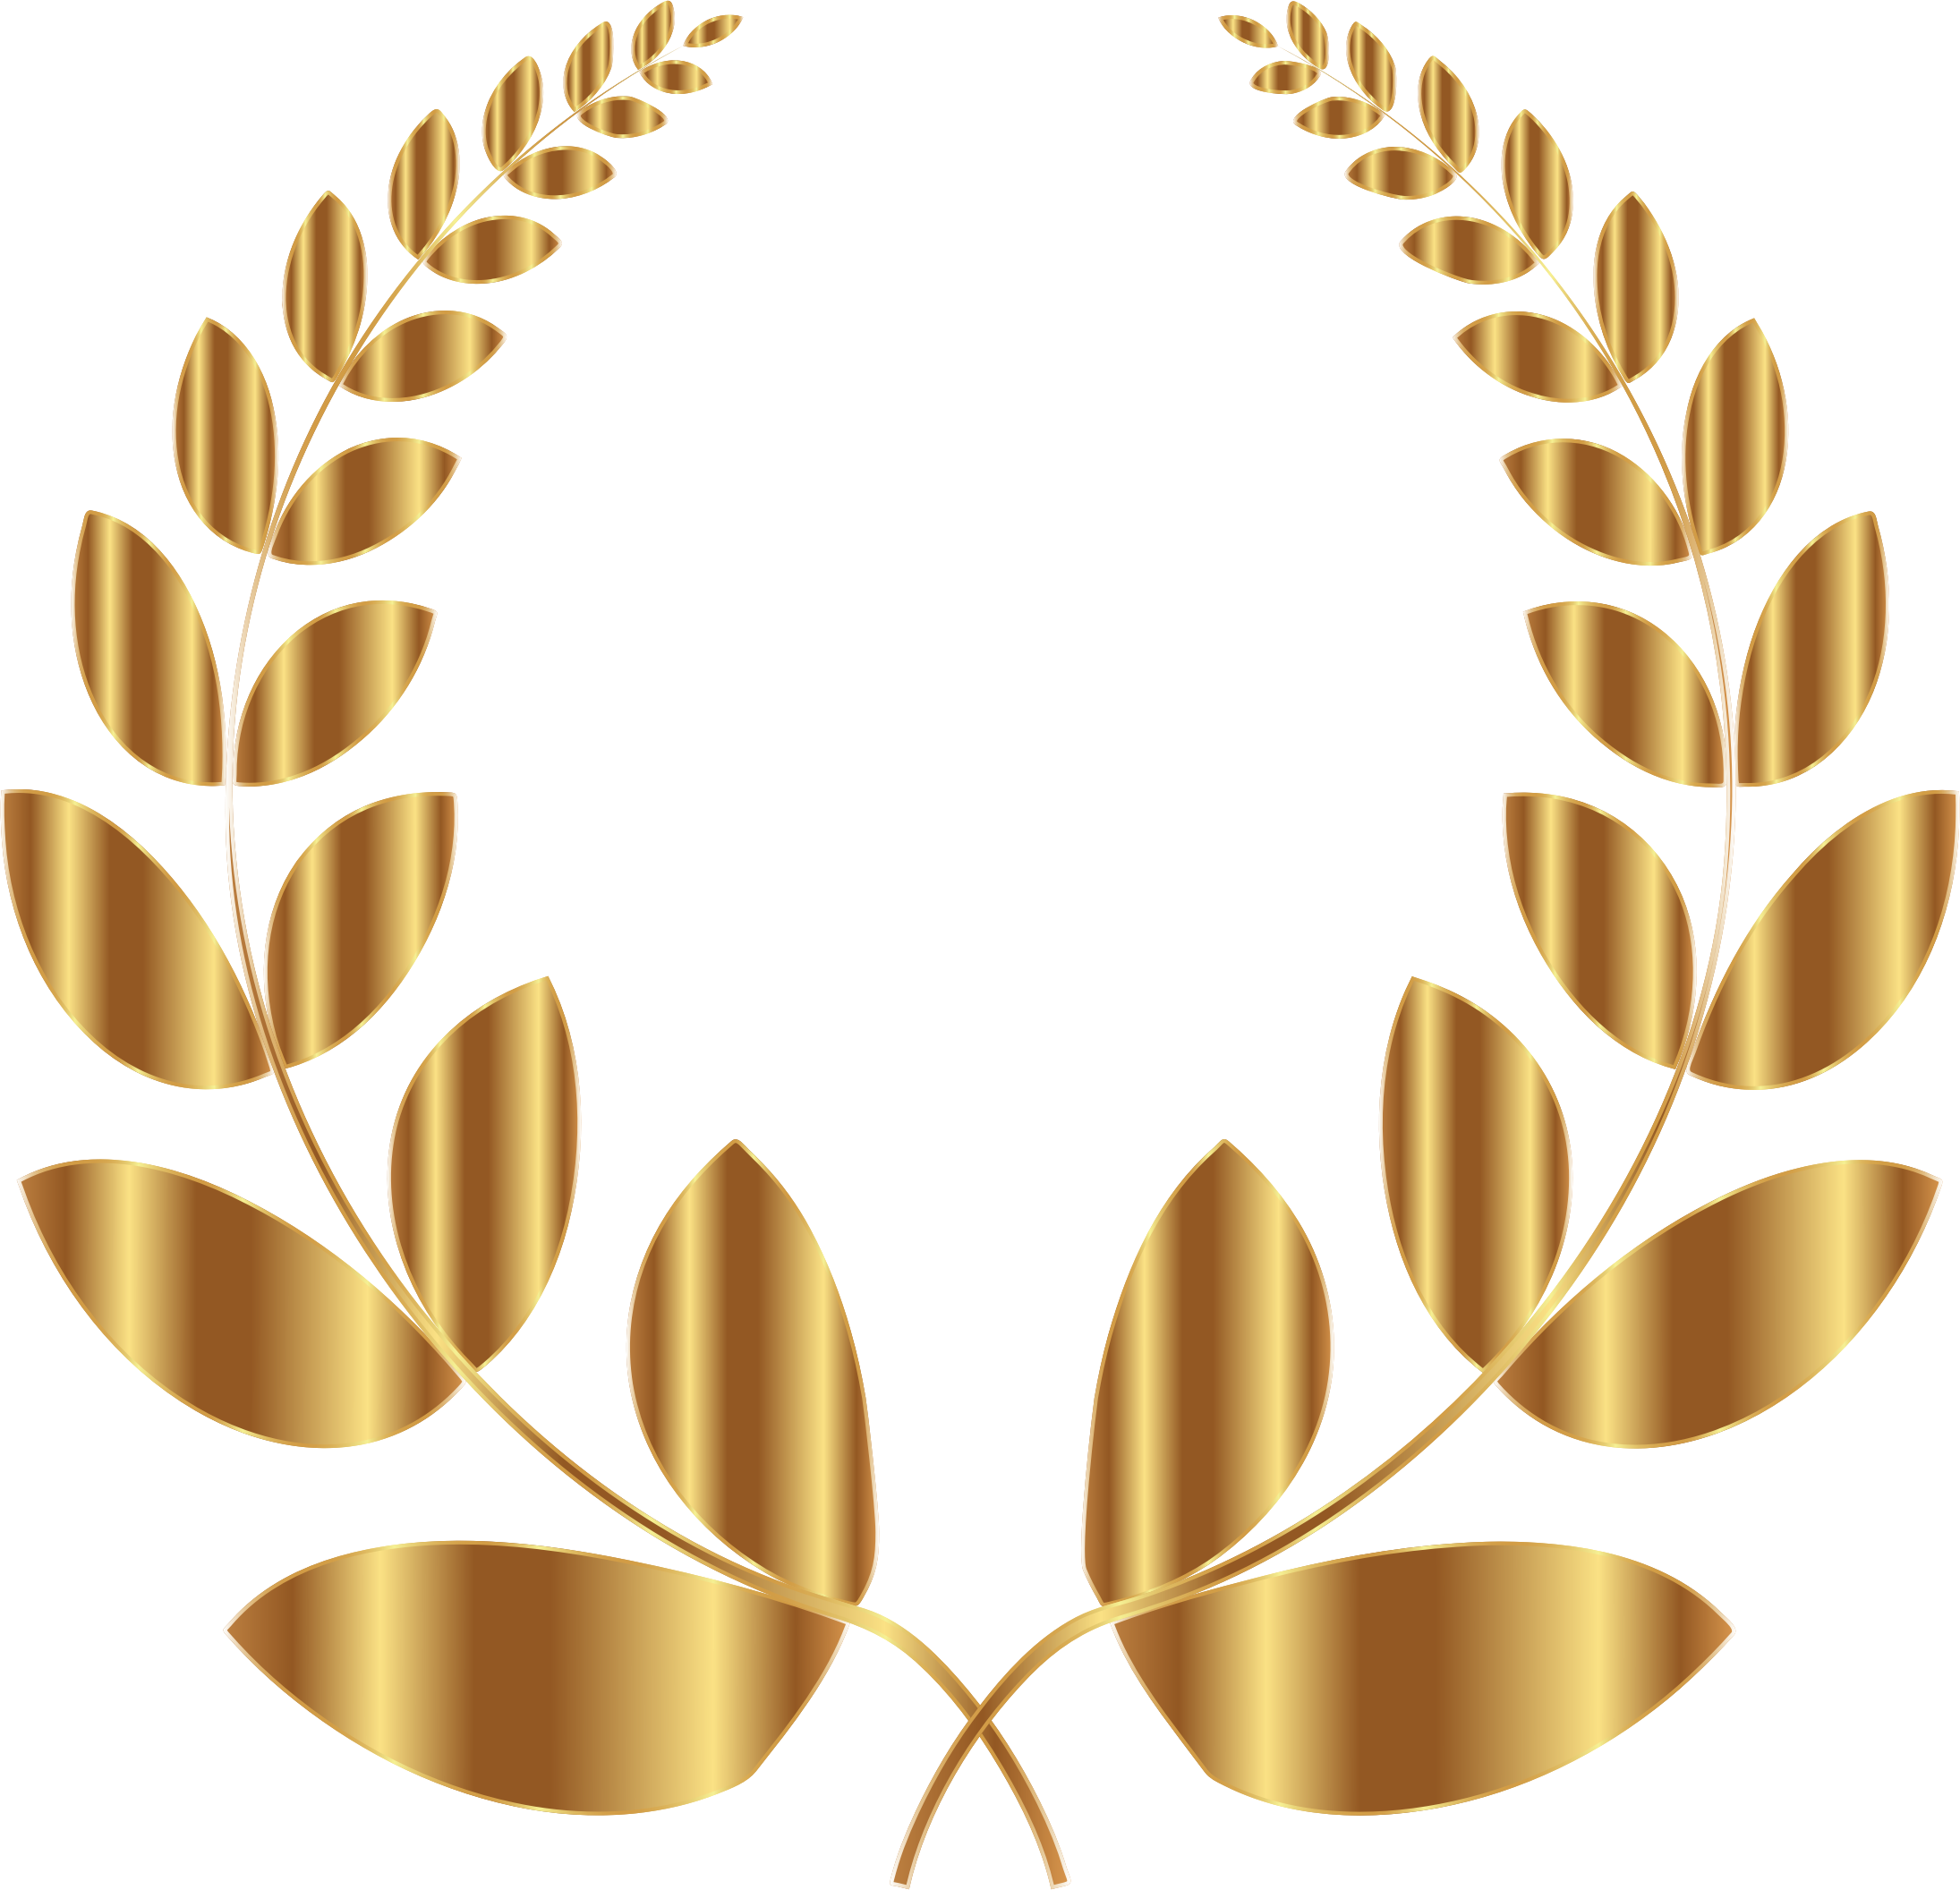 Gold 5 png. Laurel wreath no background